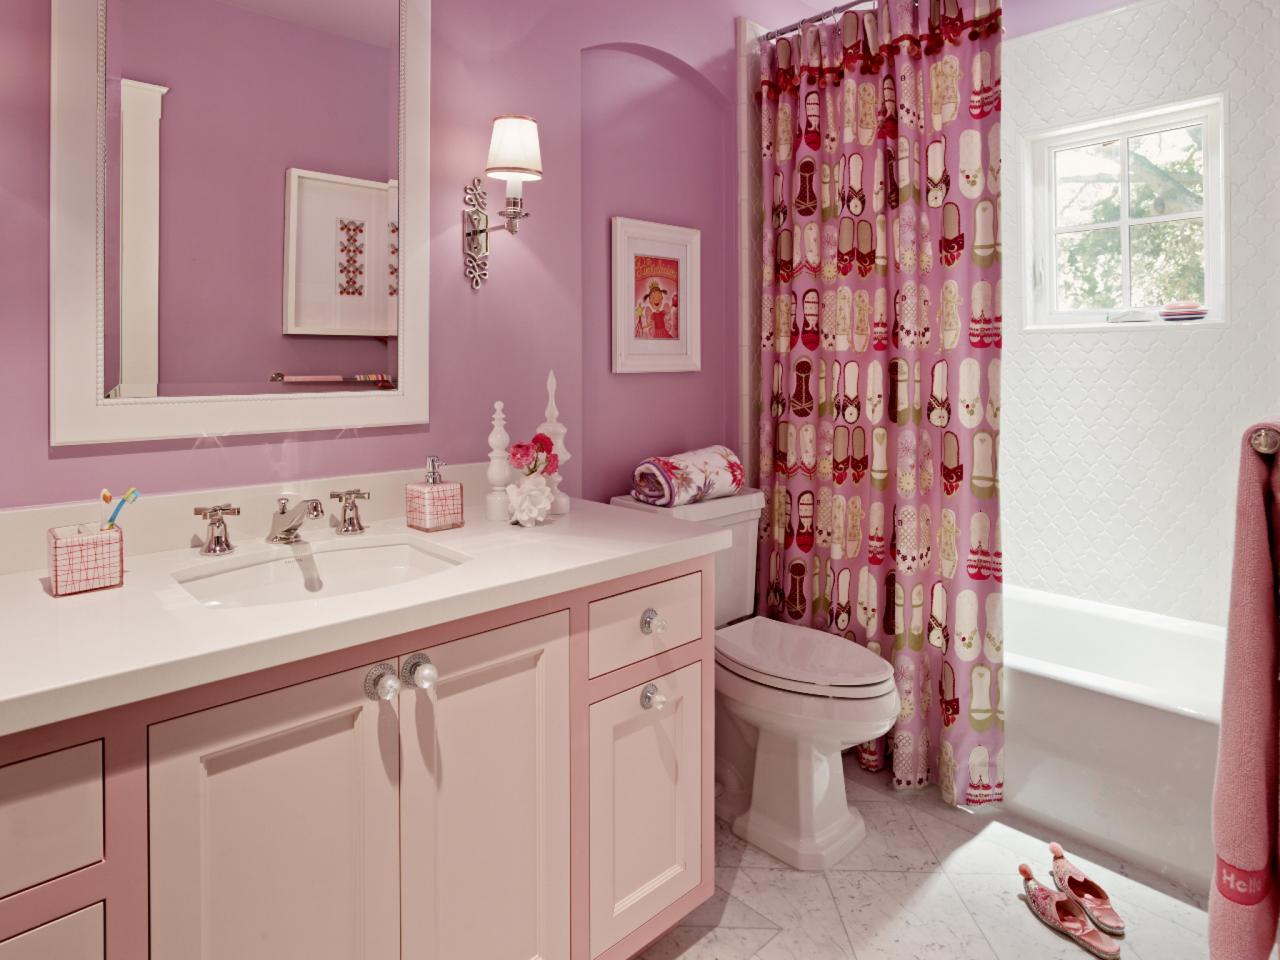 Pink Bathroom Tile Decorating Ideas : Reasons to love retro pink tiled bathrooms hgtv s